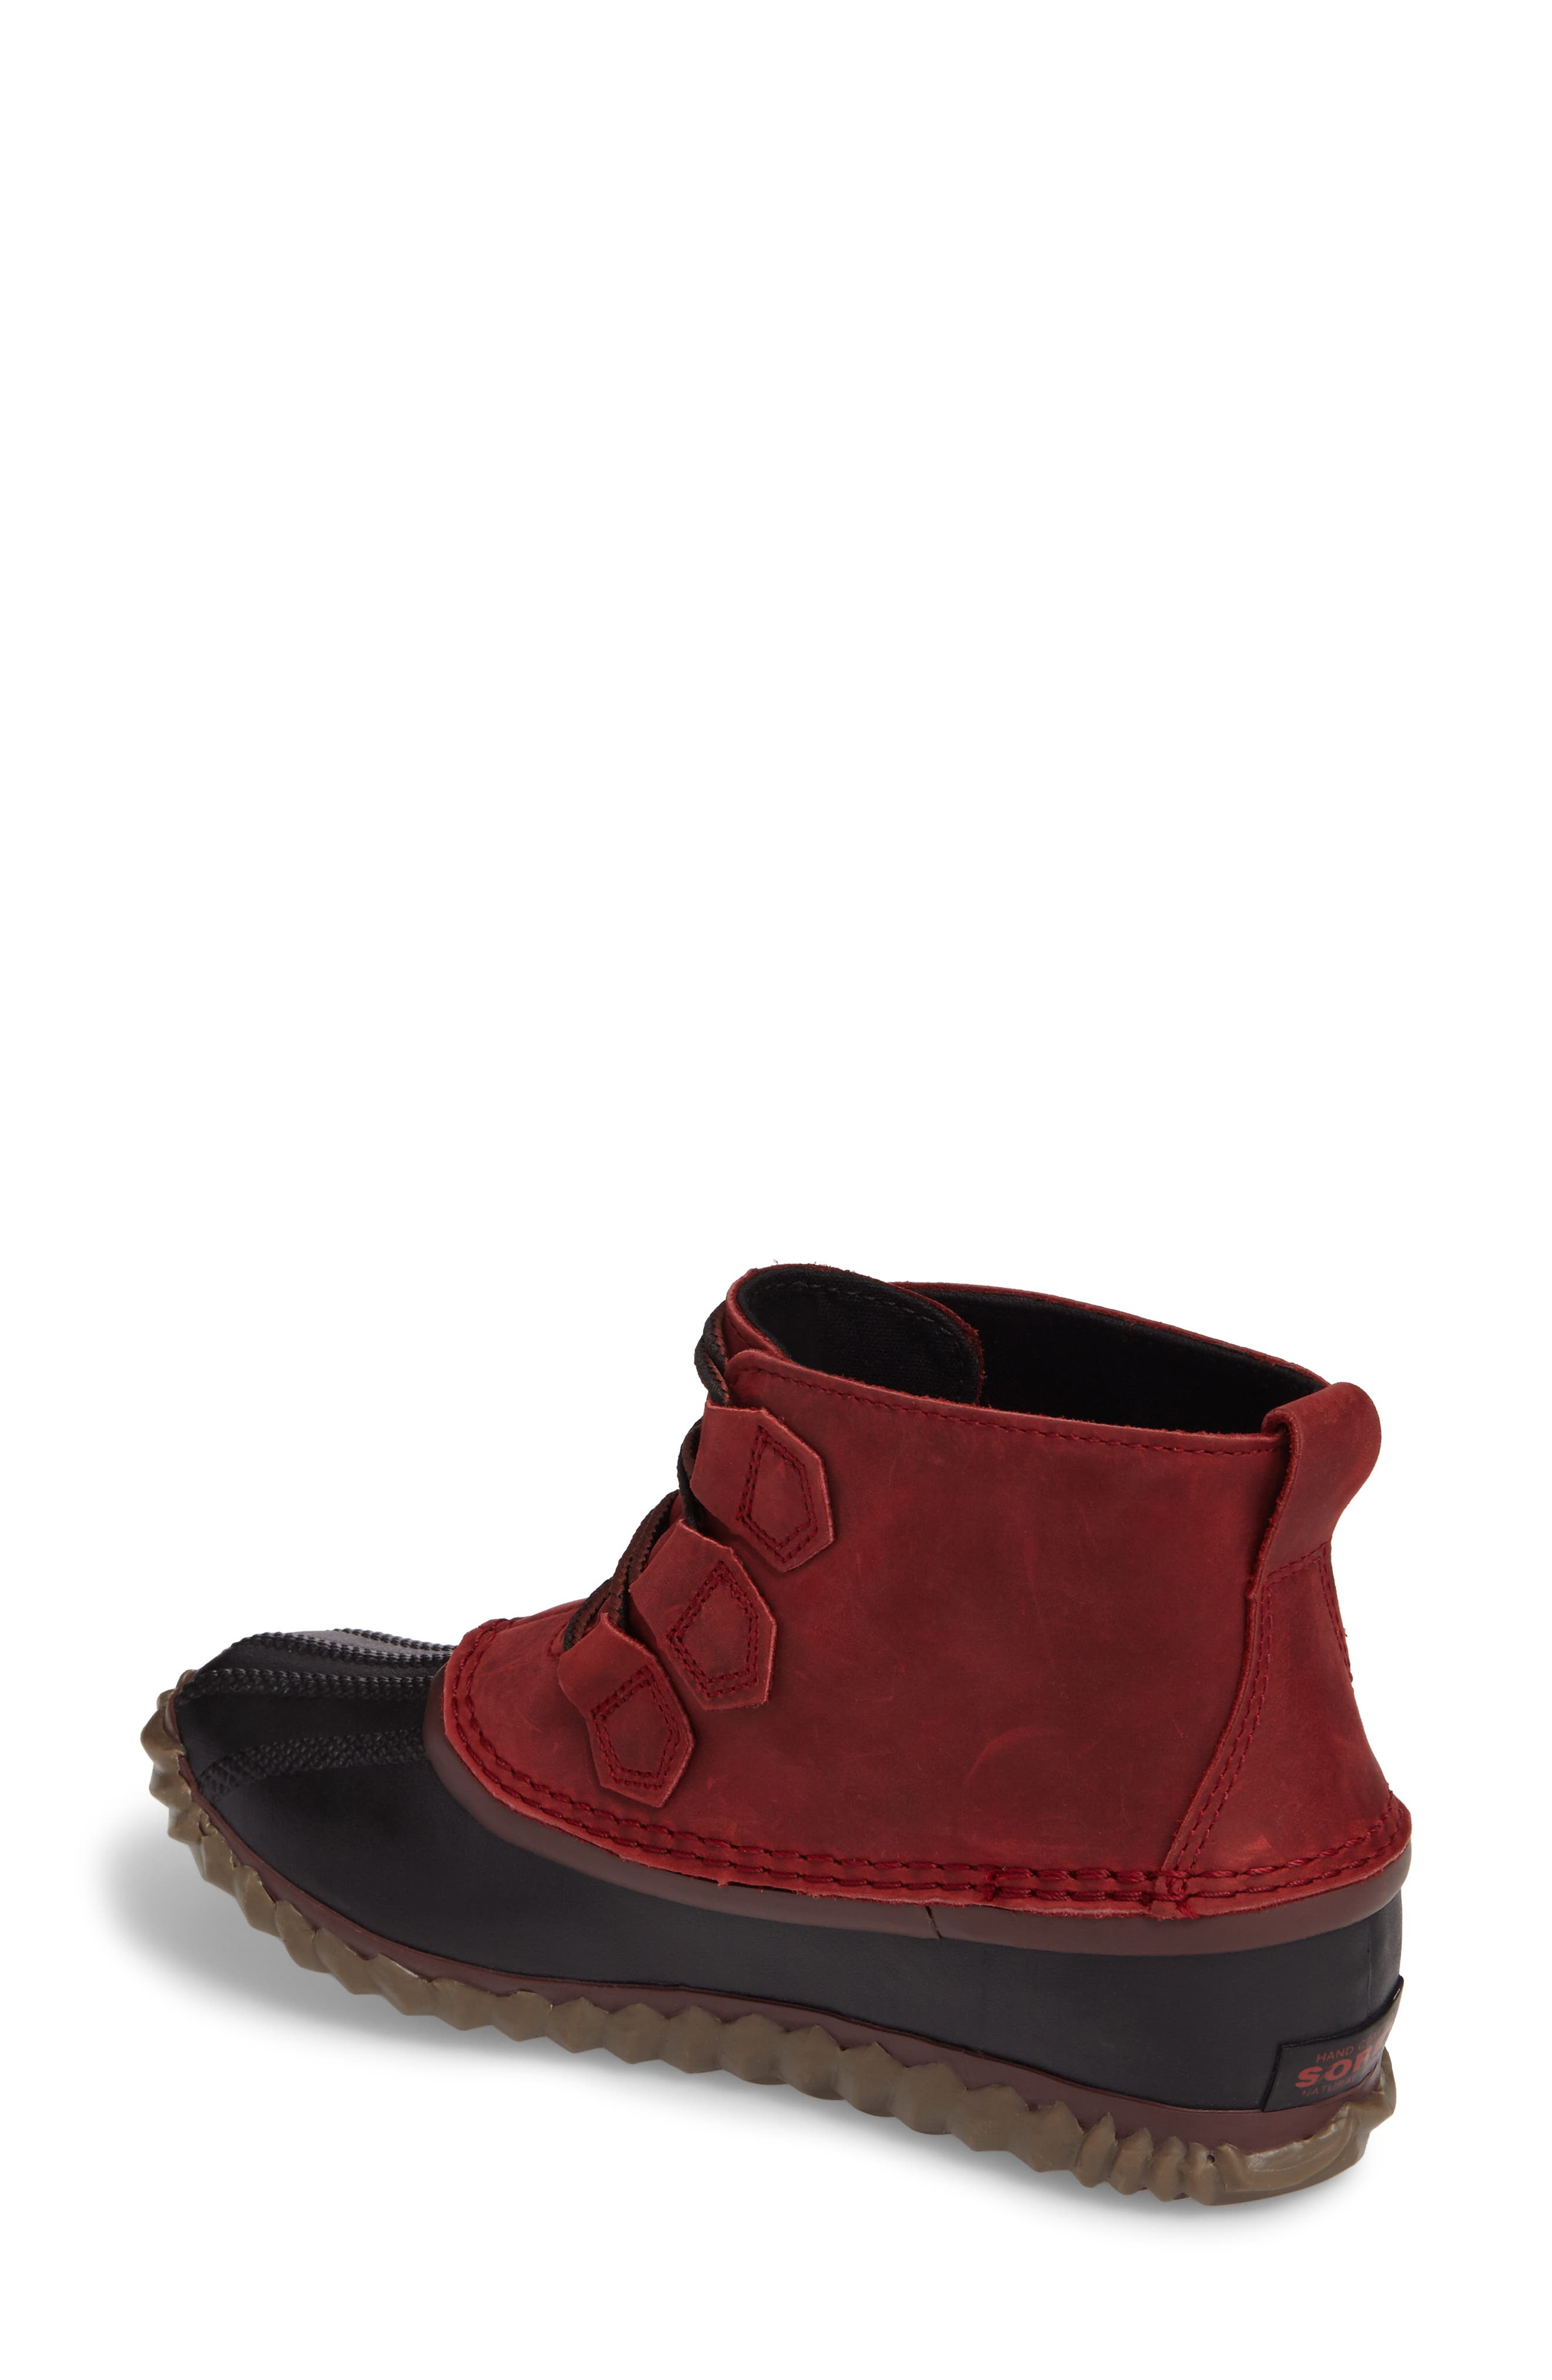 'Out N About' Leather Boot,                             Alternate thumbnail 20, color,